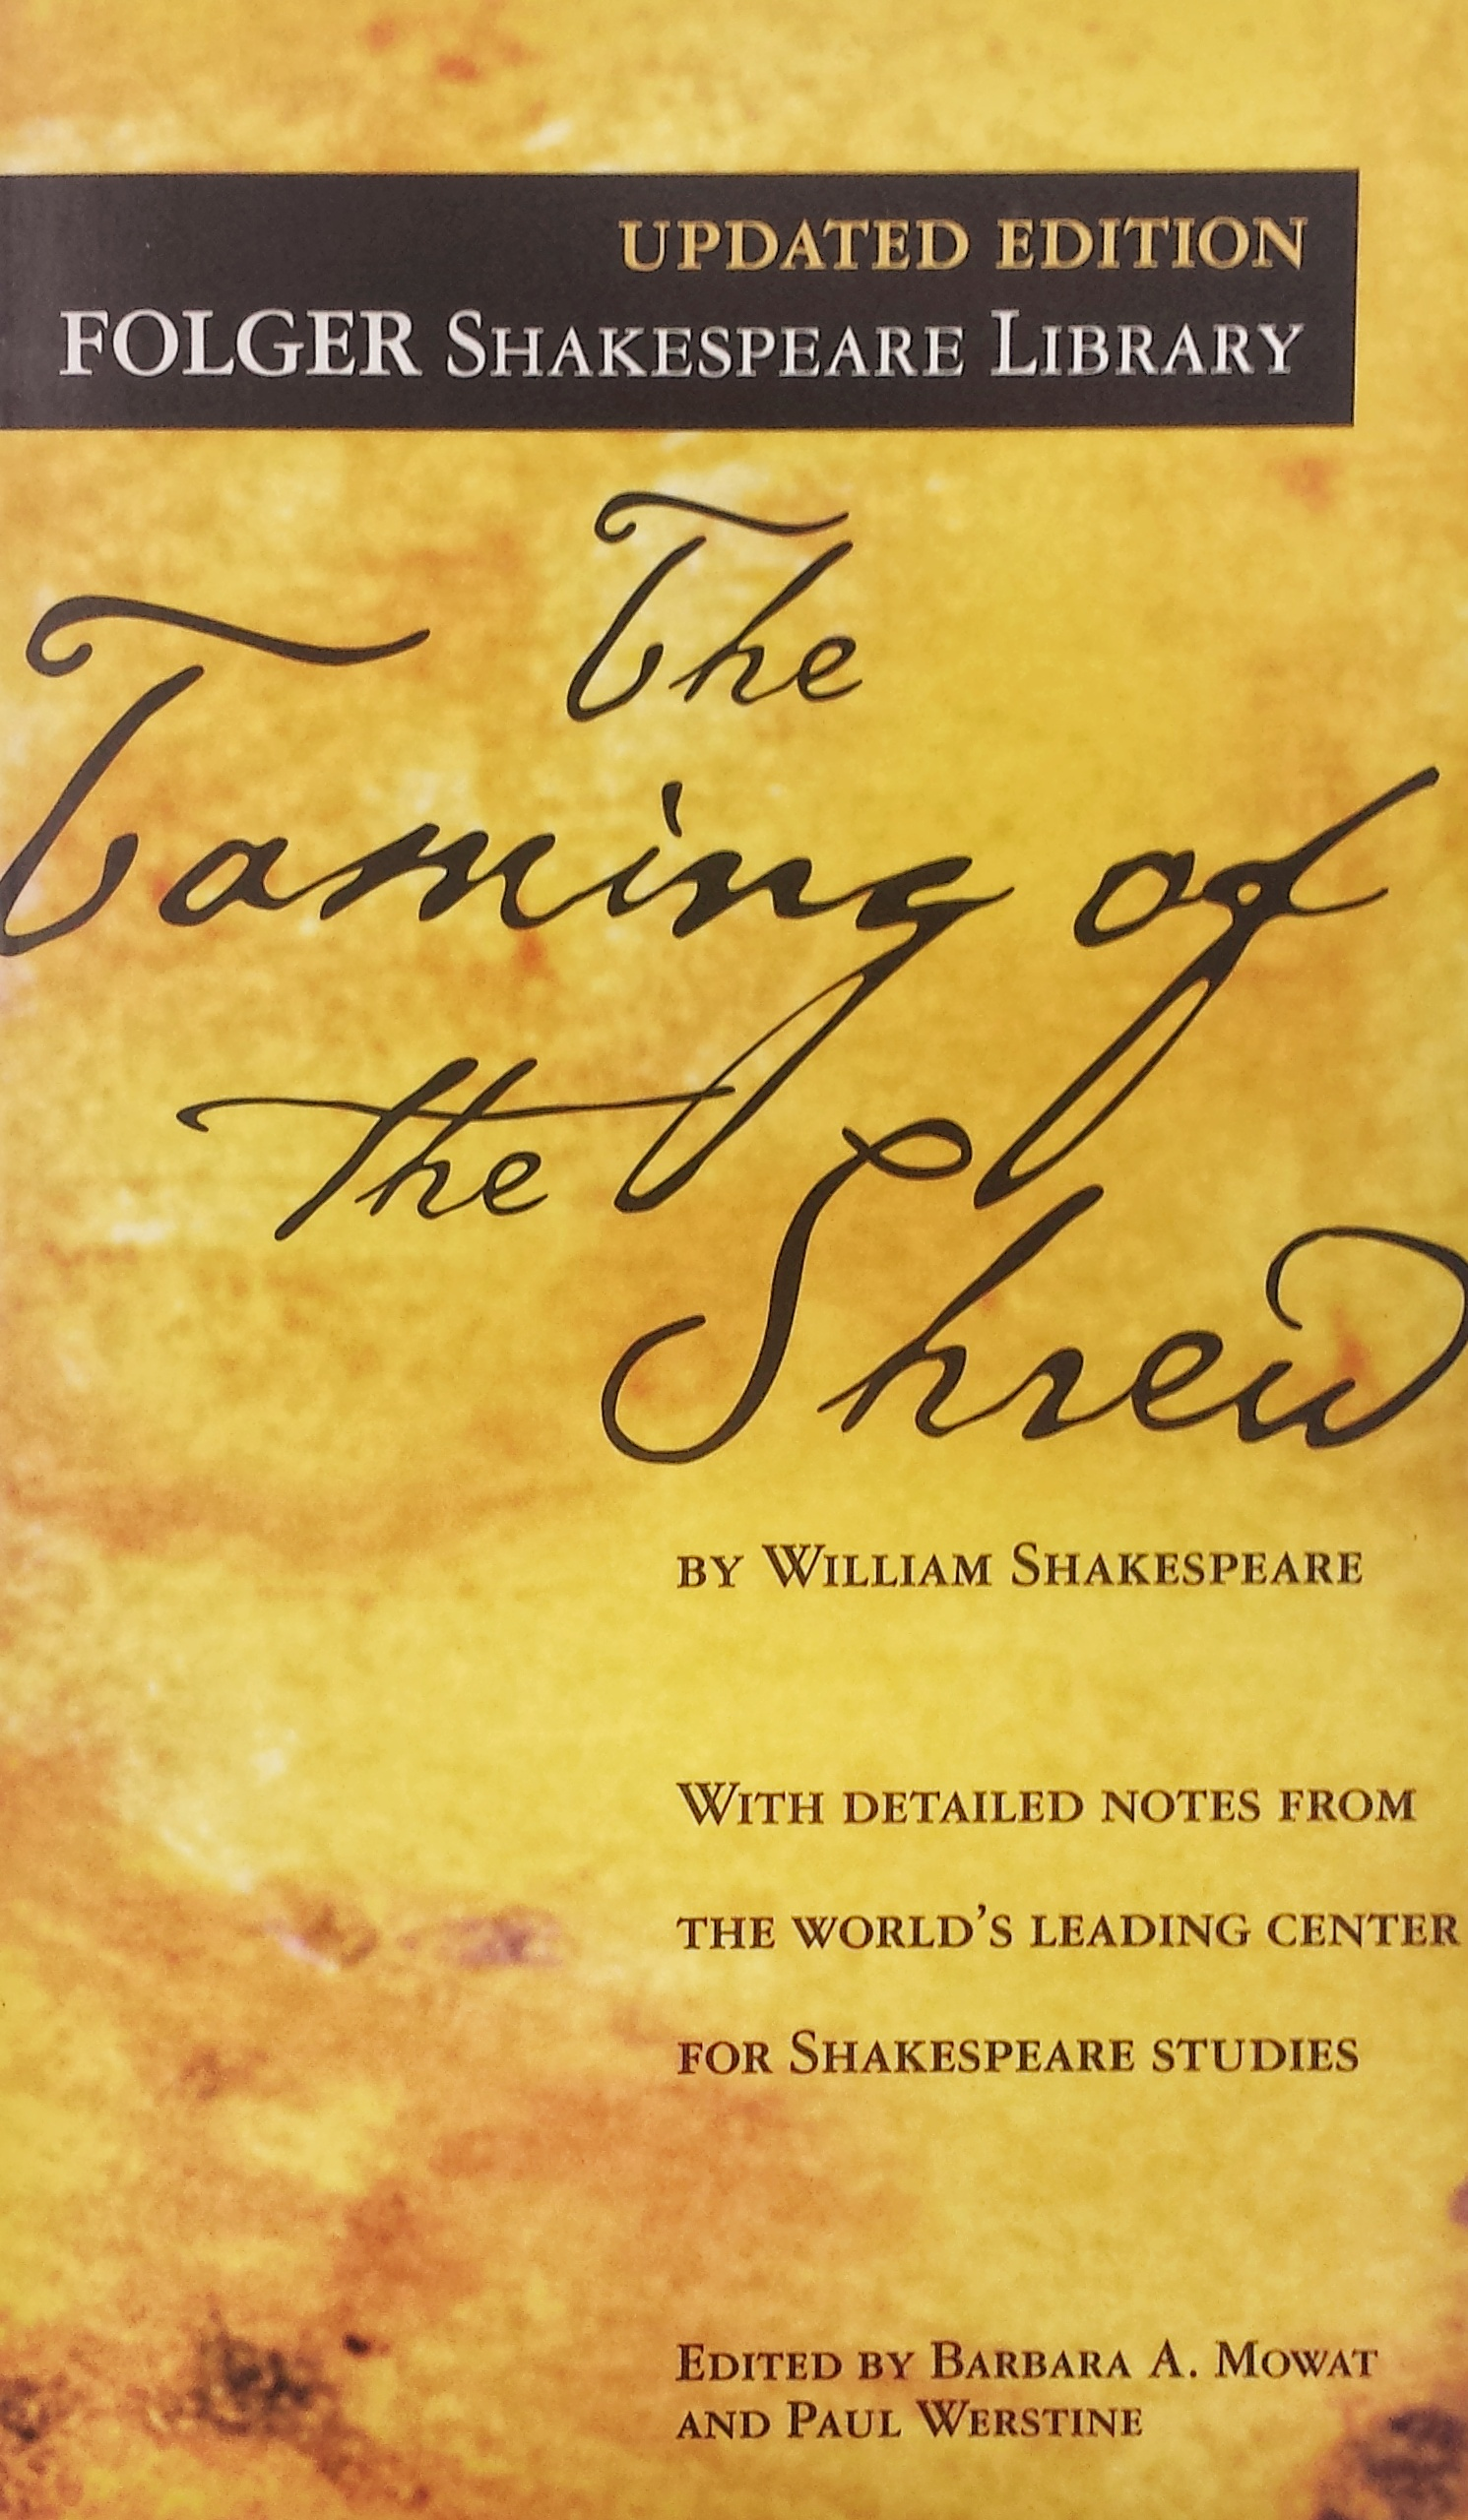 TAMING OF THE SHREW,UPDATED